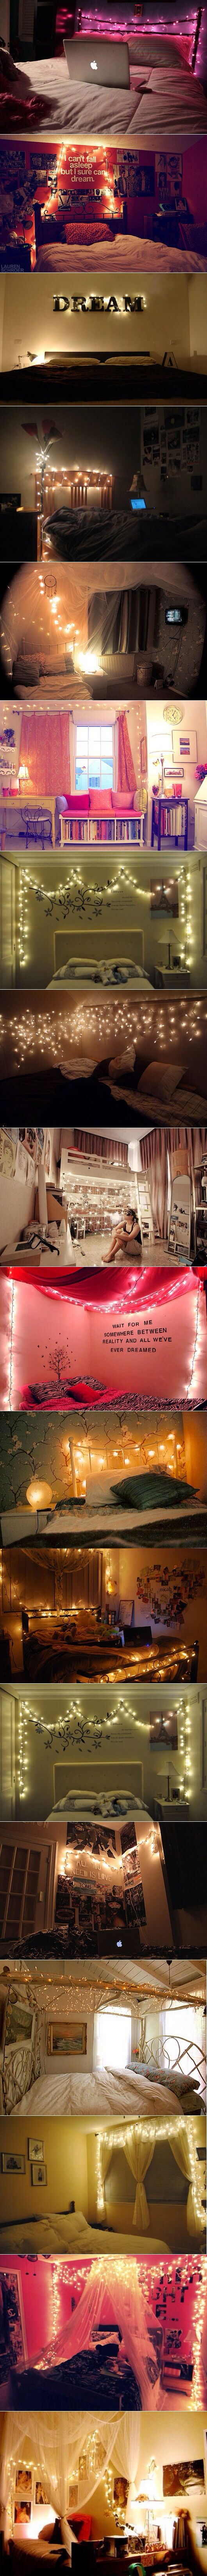 I just love white lights to accent a bedroom. So magical!